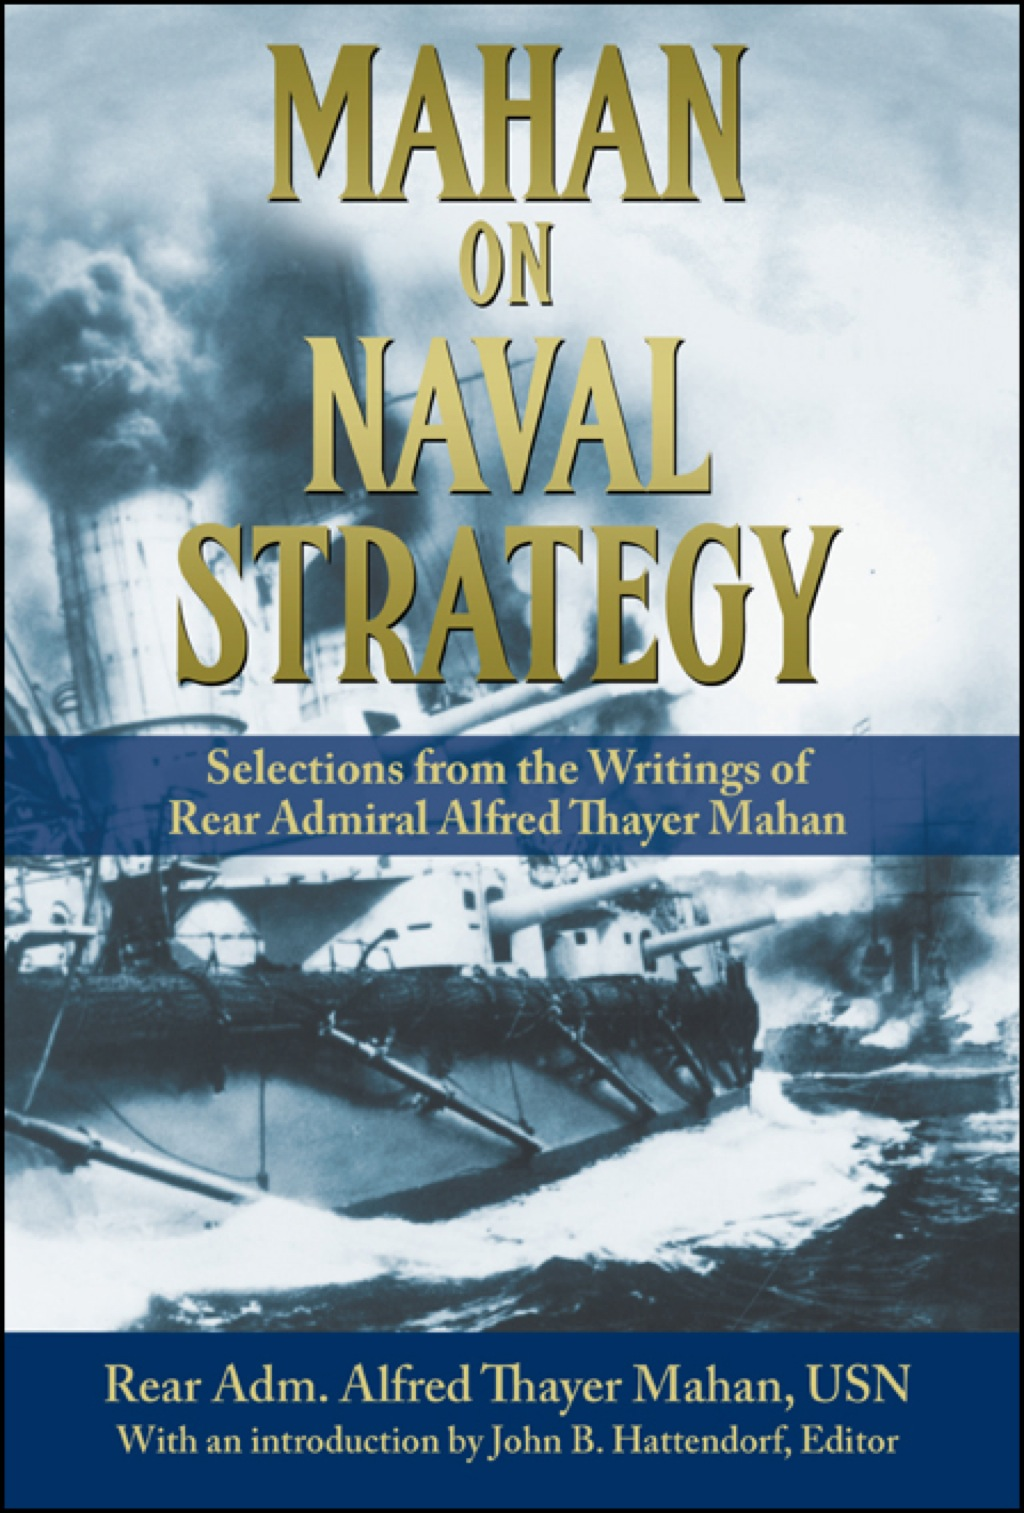 Mahan On Naval Strategy: Selections From The Writings Of Rear Admiral Alfred Thayer Mahan (ebook)